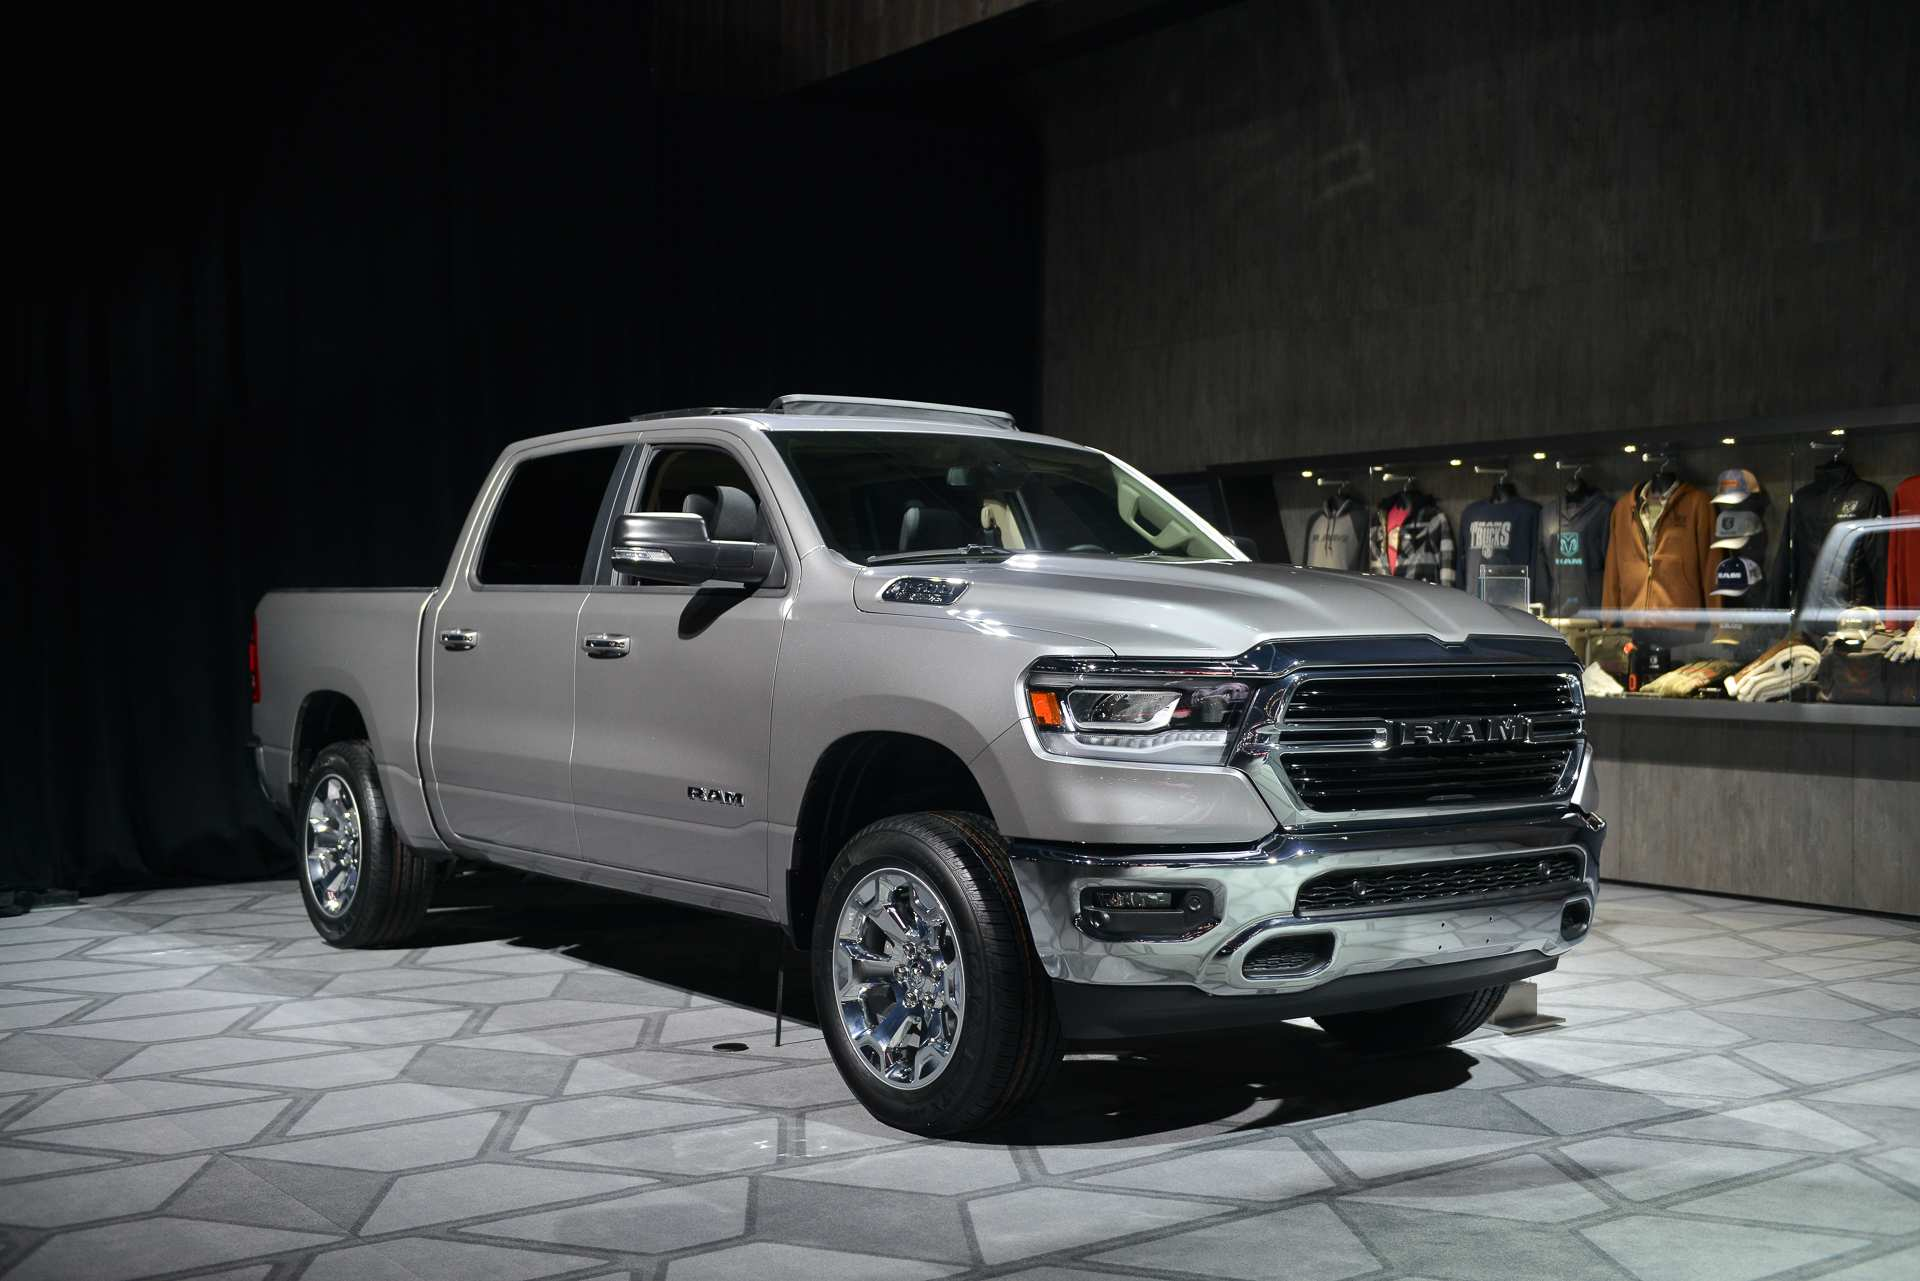 49 A 2019 Dodge Ram Truck Images